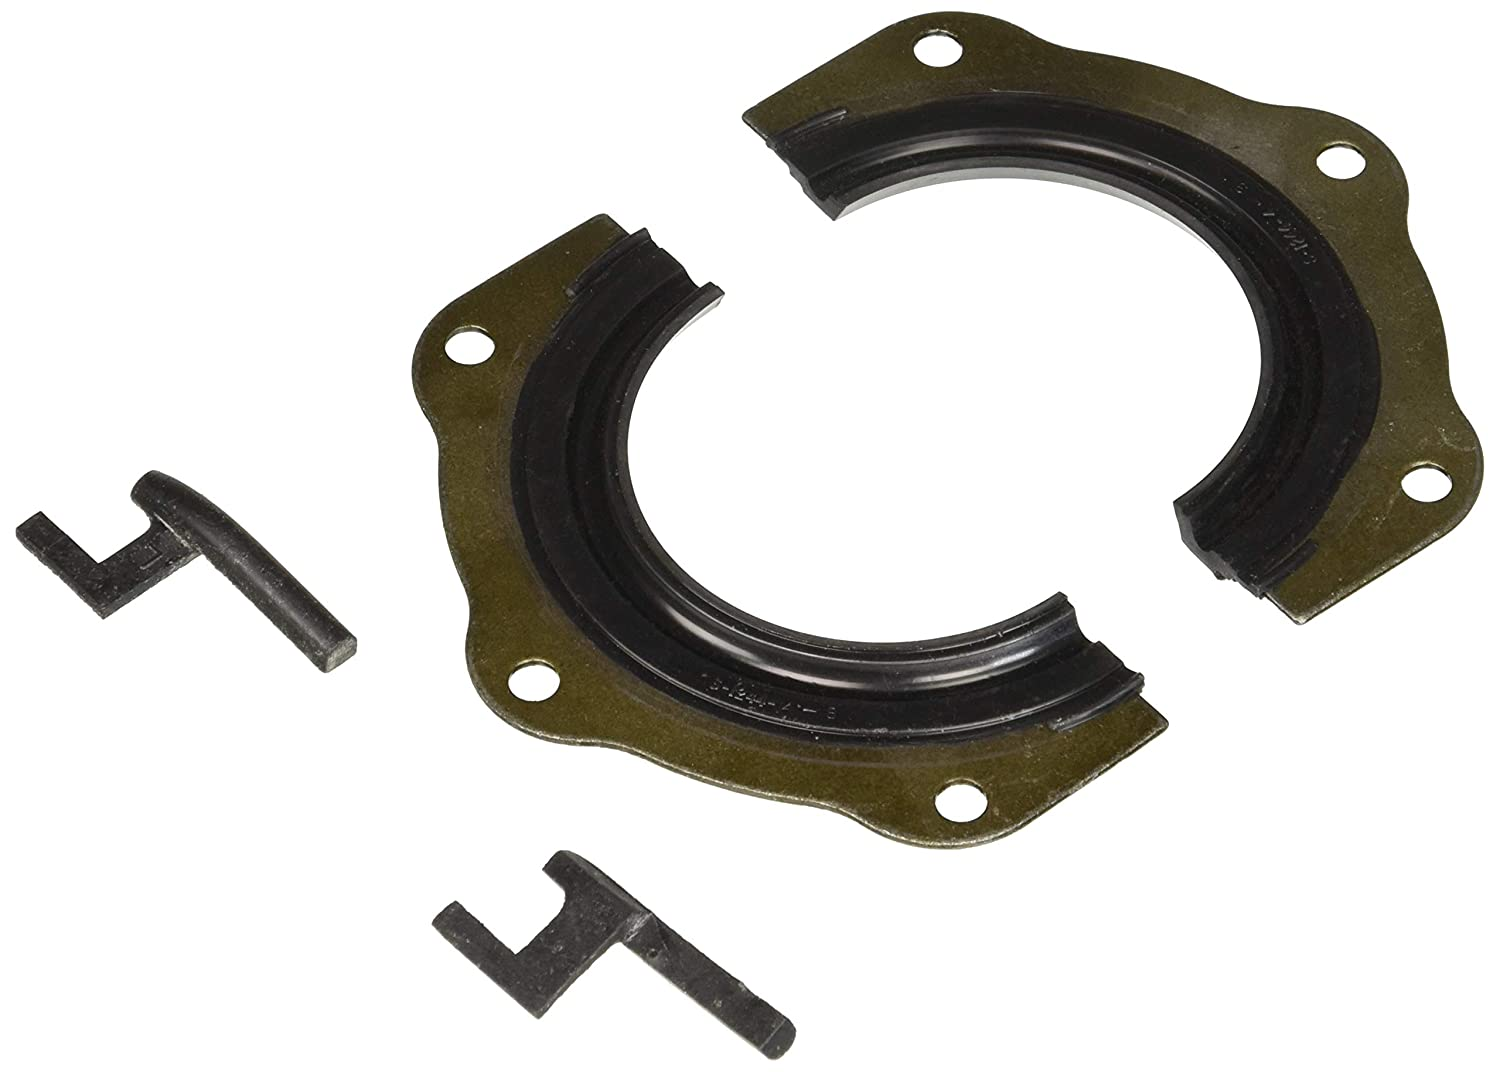 MAHLE Original JV134-6 Engine Main Bearing Gasket Set